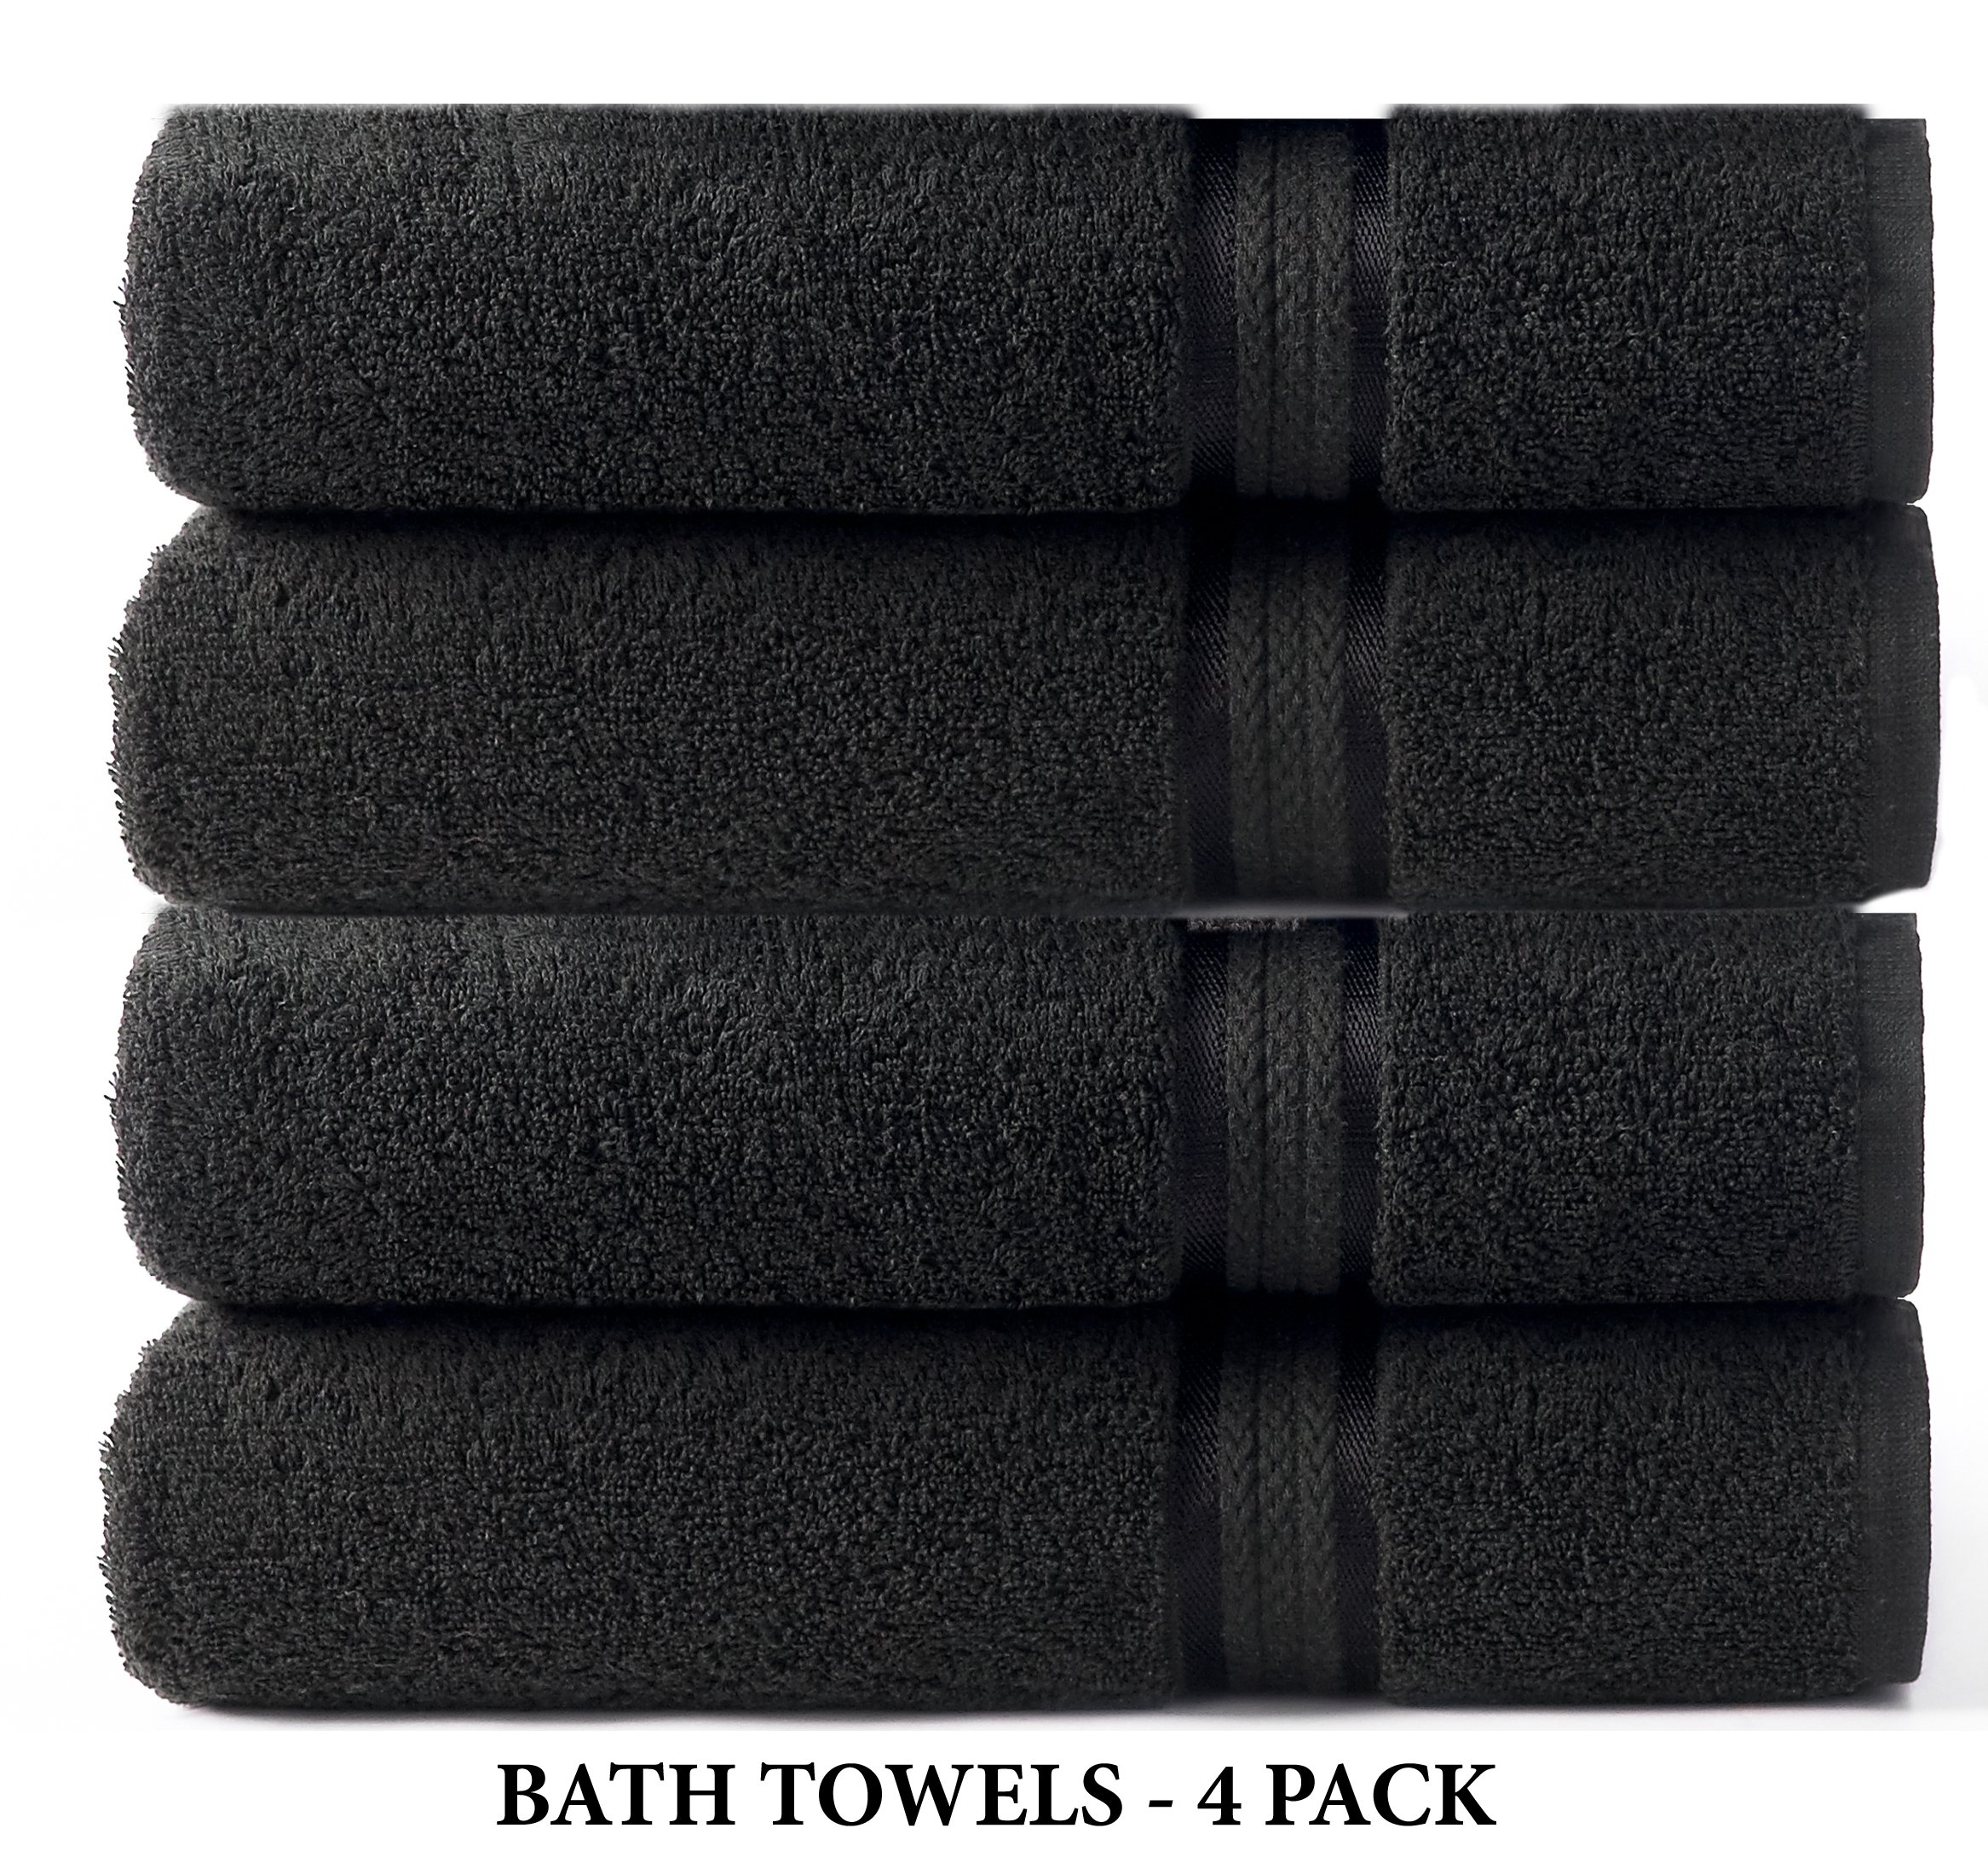 Cotton Craft - 12 Pack - Ultra Soft Extra Large Wash Cloths 12x12 Black - 100% Pure Ringspun Cotton - Luxurious Rayon Trim - Ideal for Daily Use - Each Towel Weighs 2 Ounces